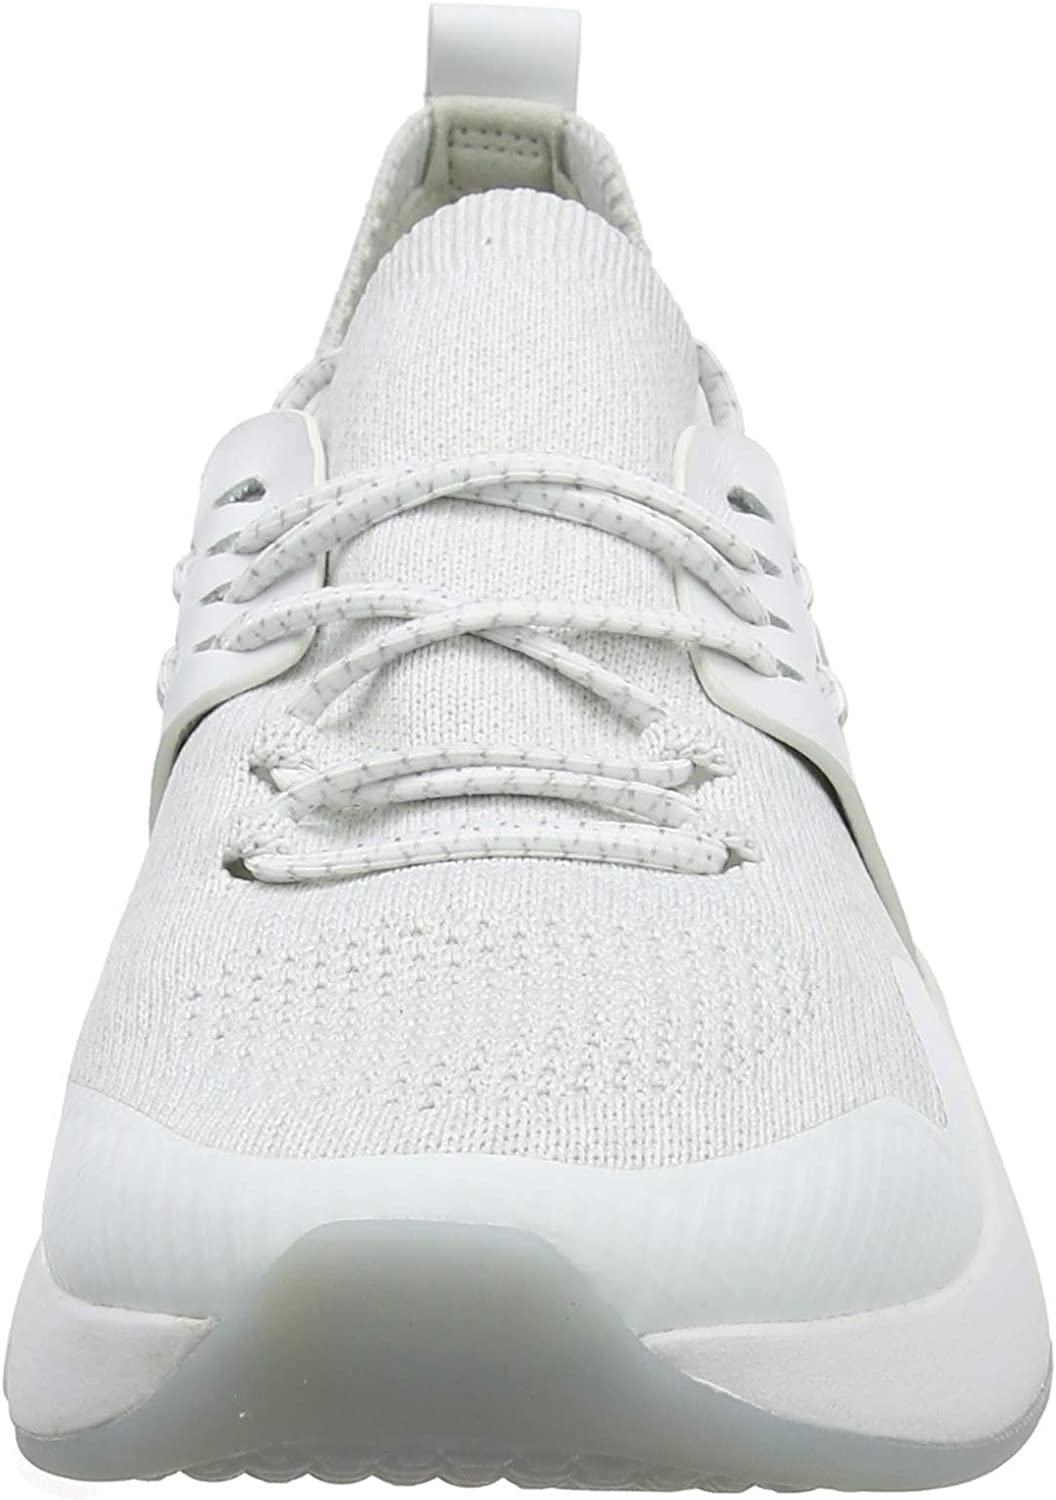 Cole Haan Damen Zerogrand All-Day Trainer Sneaker, weiß Weiß Optic White Glacier Grey Knit Optic White Leather Optic White Optic White Glacr